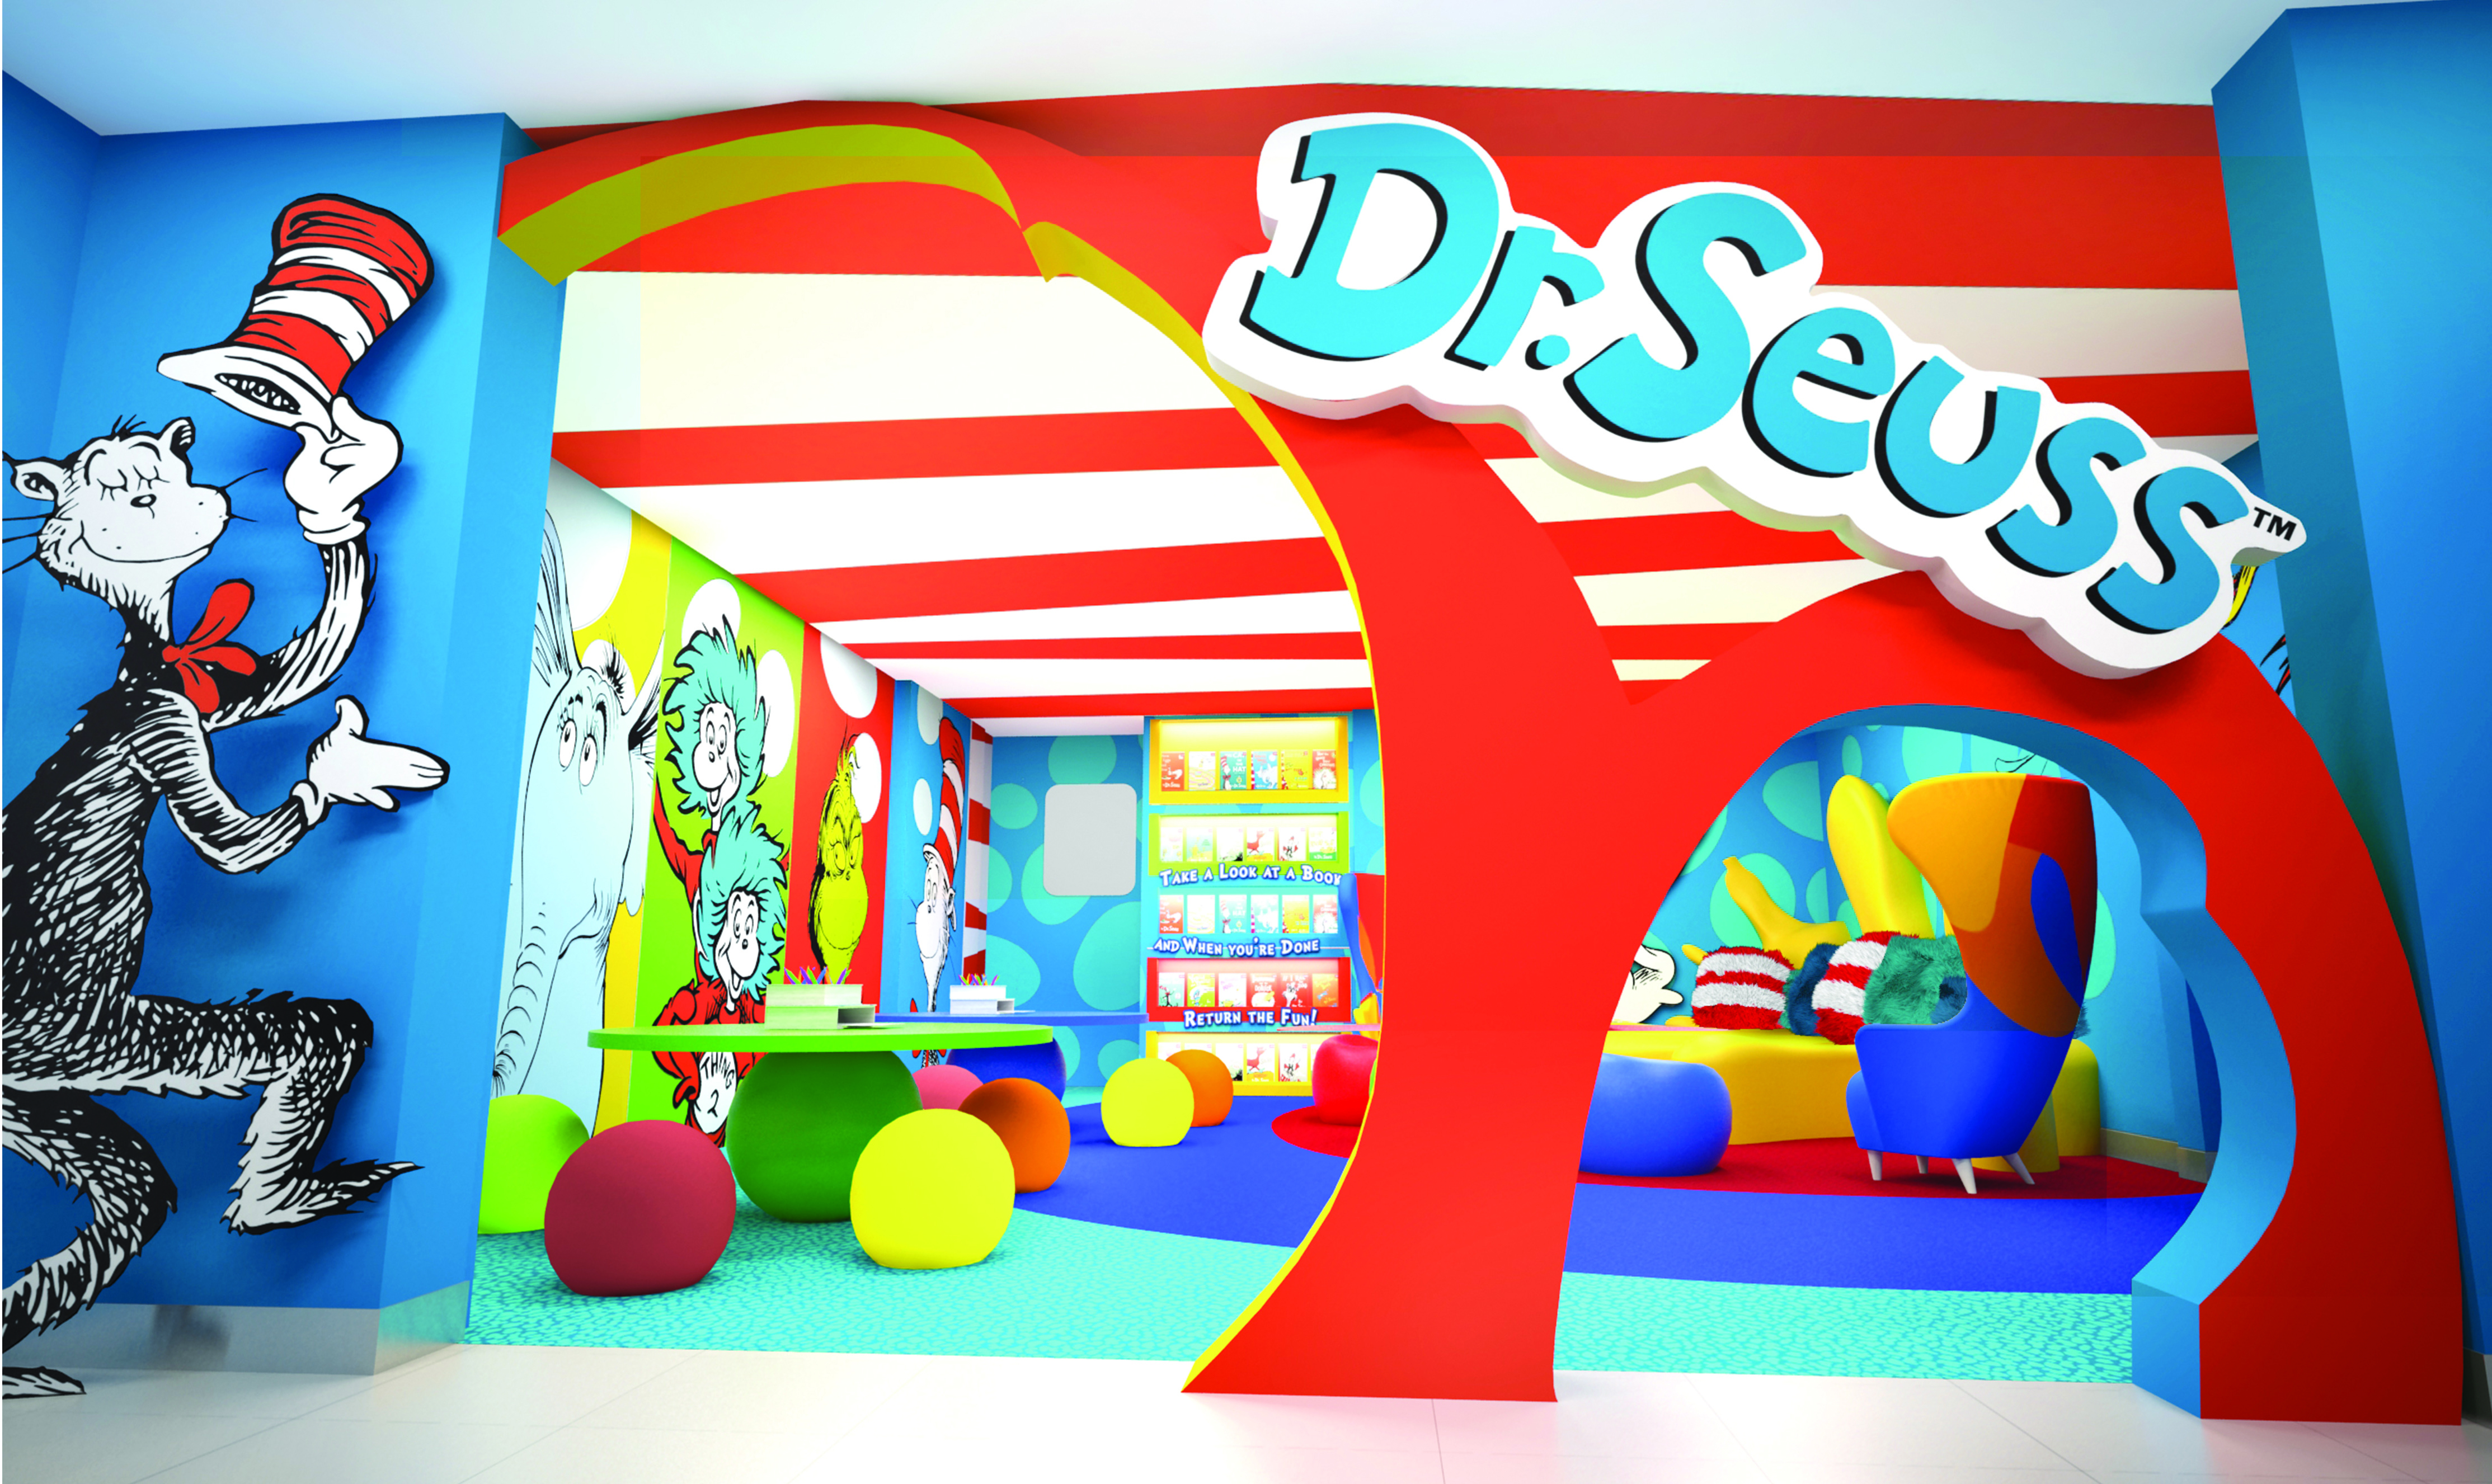 Carnival Cruise Lines Partners With Dr. Seuss Enterprises To Bring 'Seuss At Sea' To Kids And Families On 'Fun Ships'